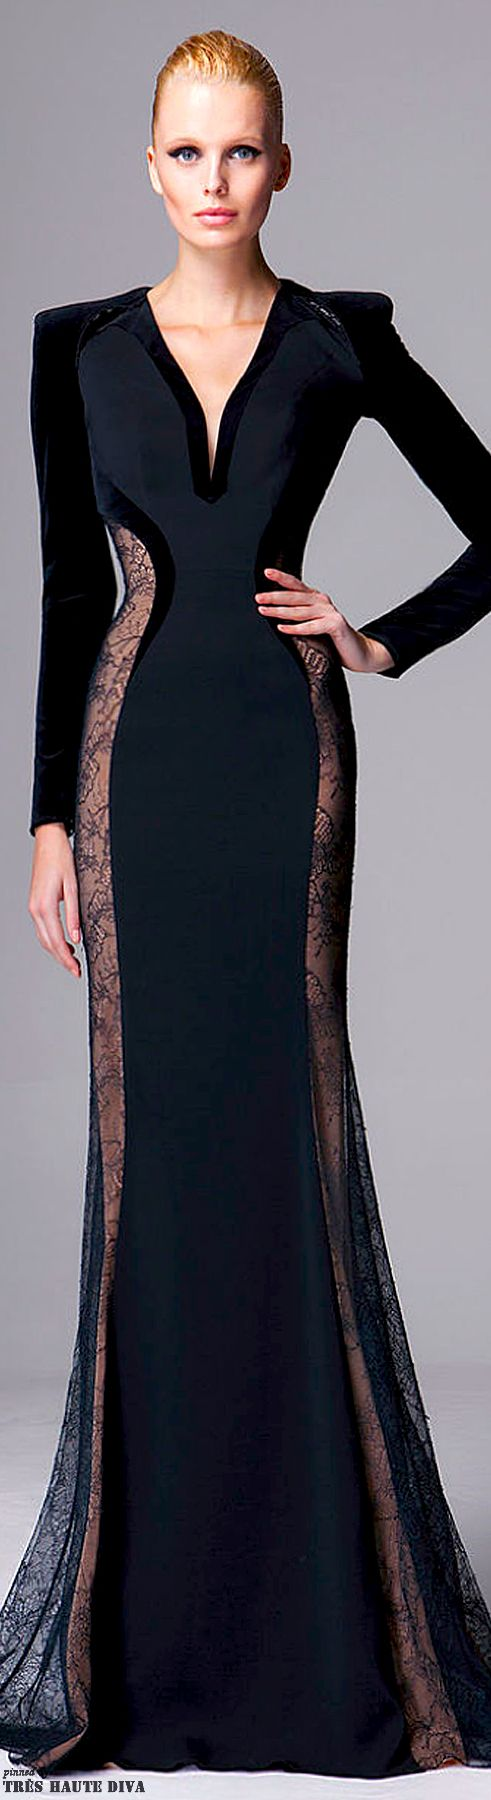 The best images about drees on pinterest